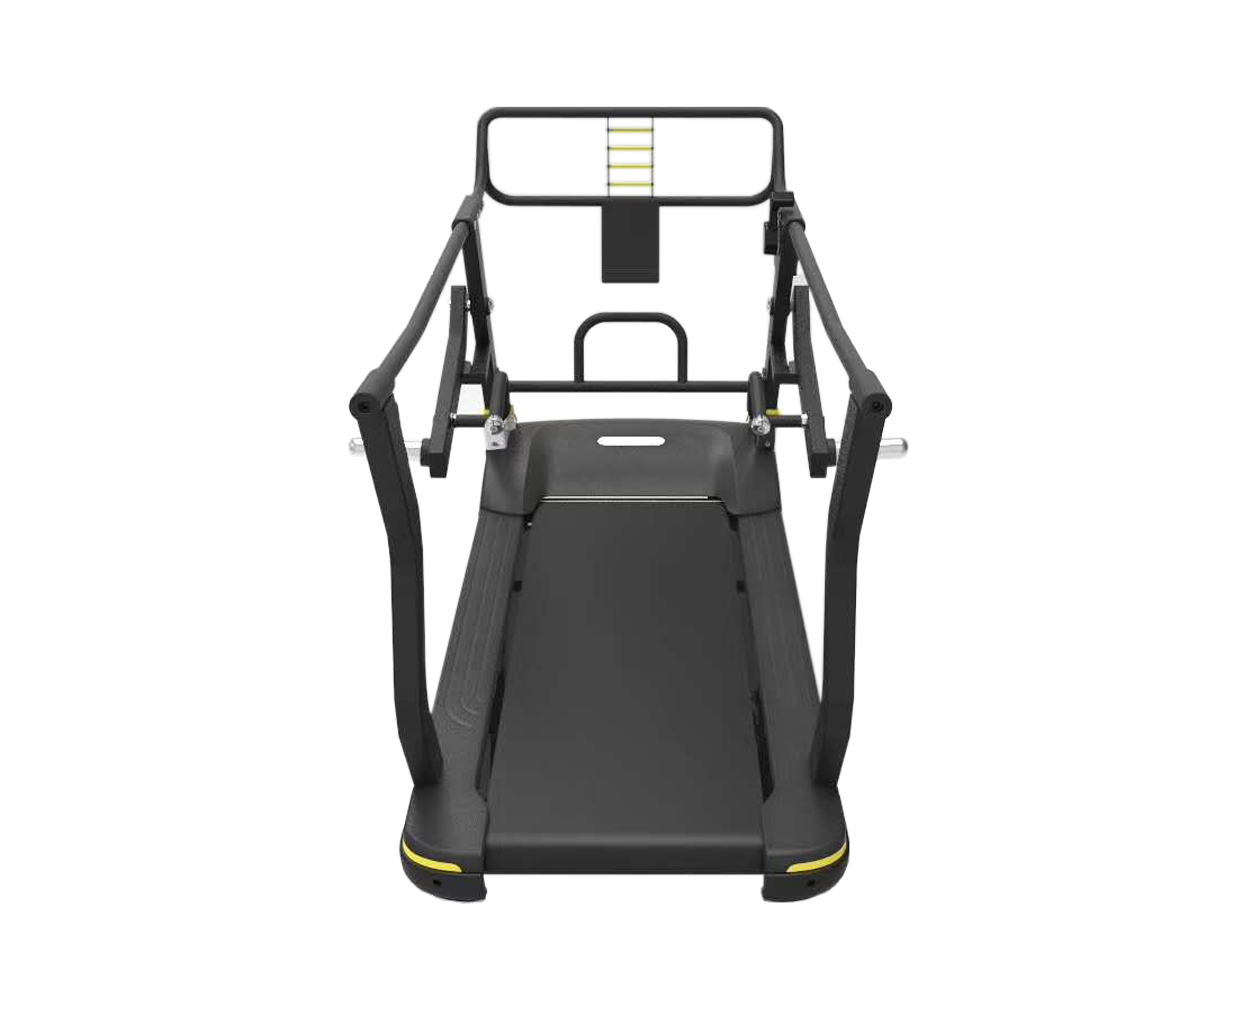 CM-613 Resistance Training Treadmill